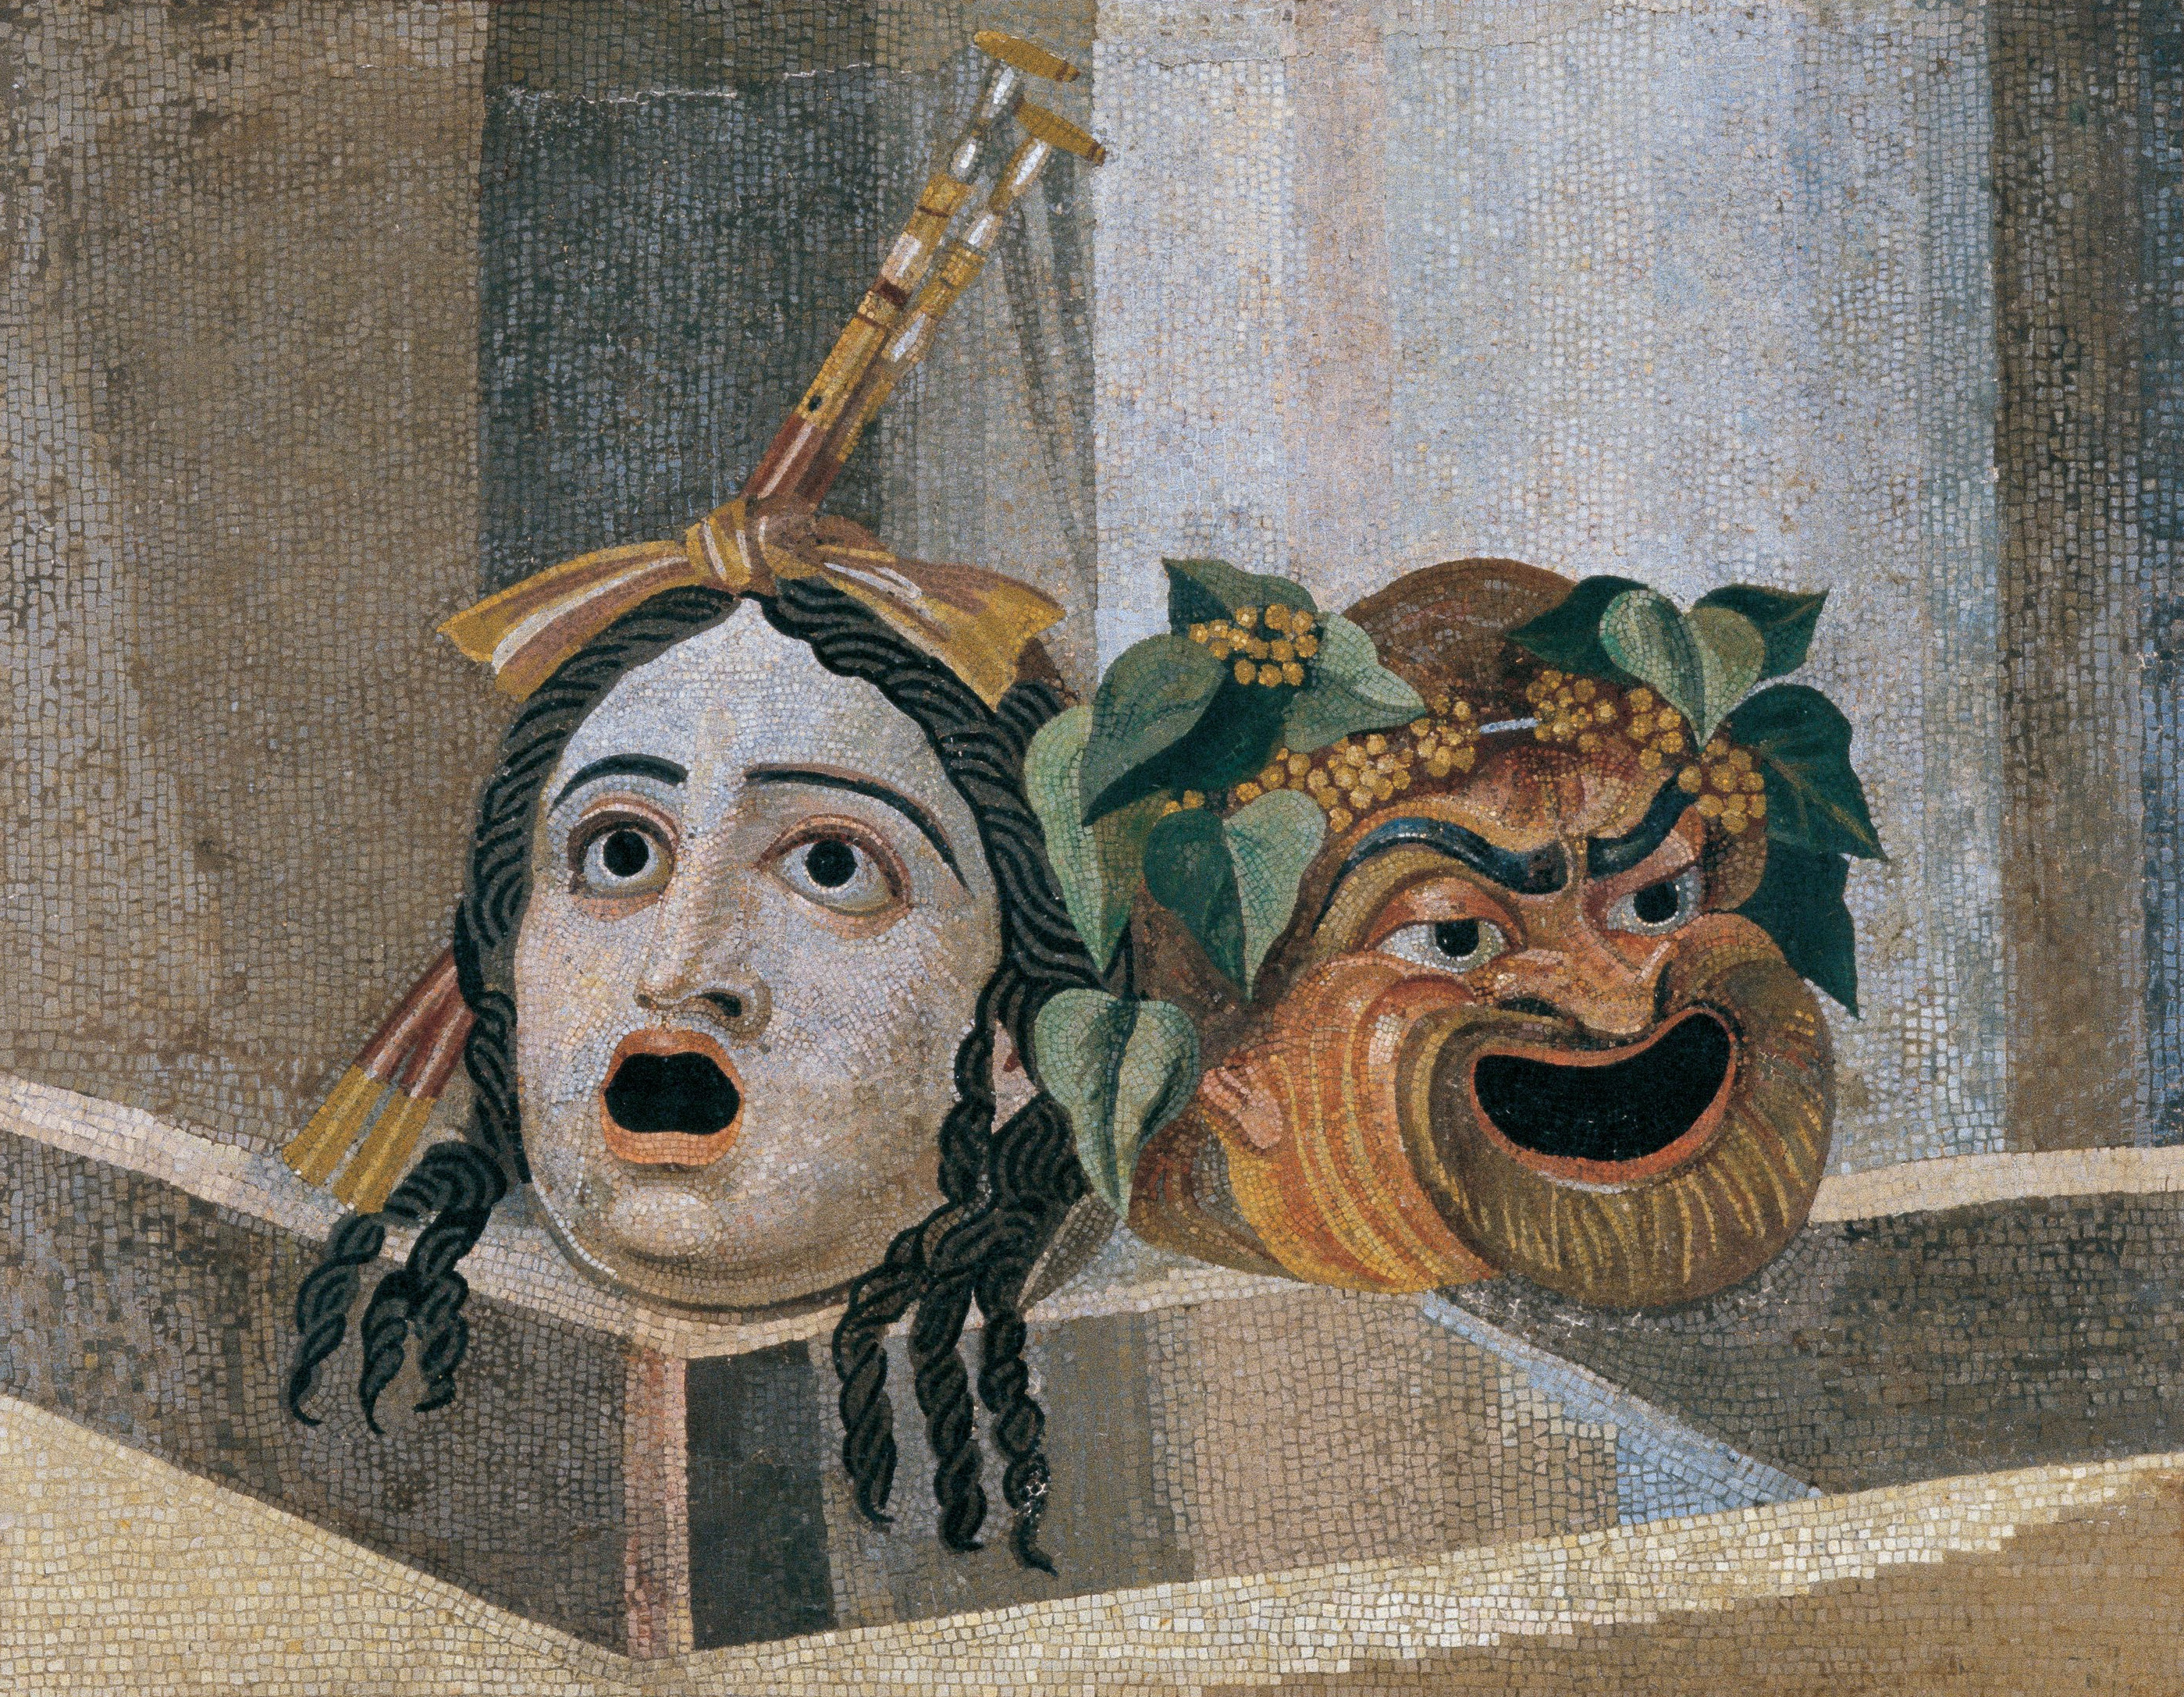 Mosaic_of_the_theatrical_masks_-_Google_Art_Project_(crop_without_borders)